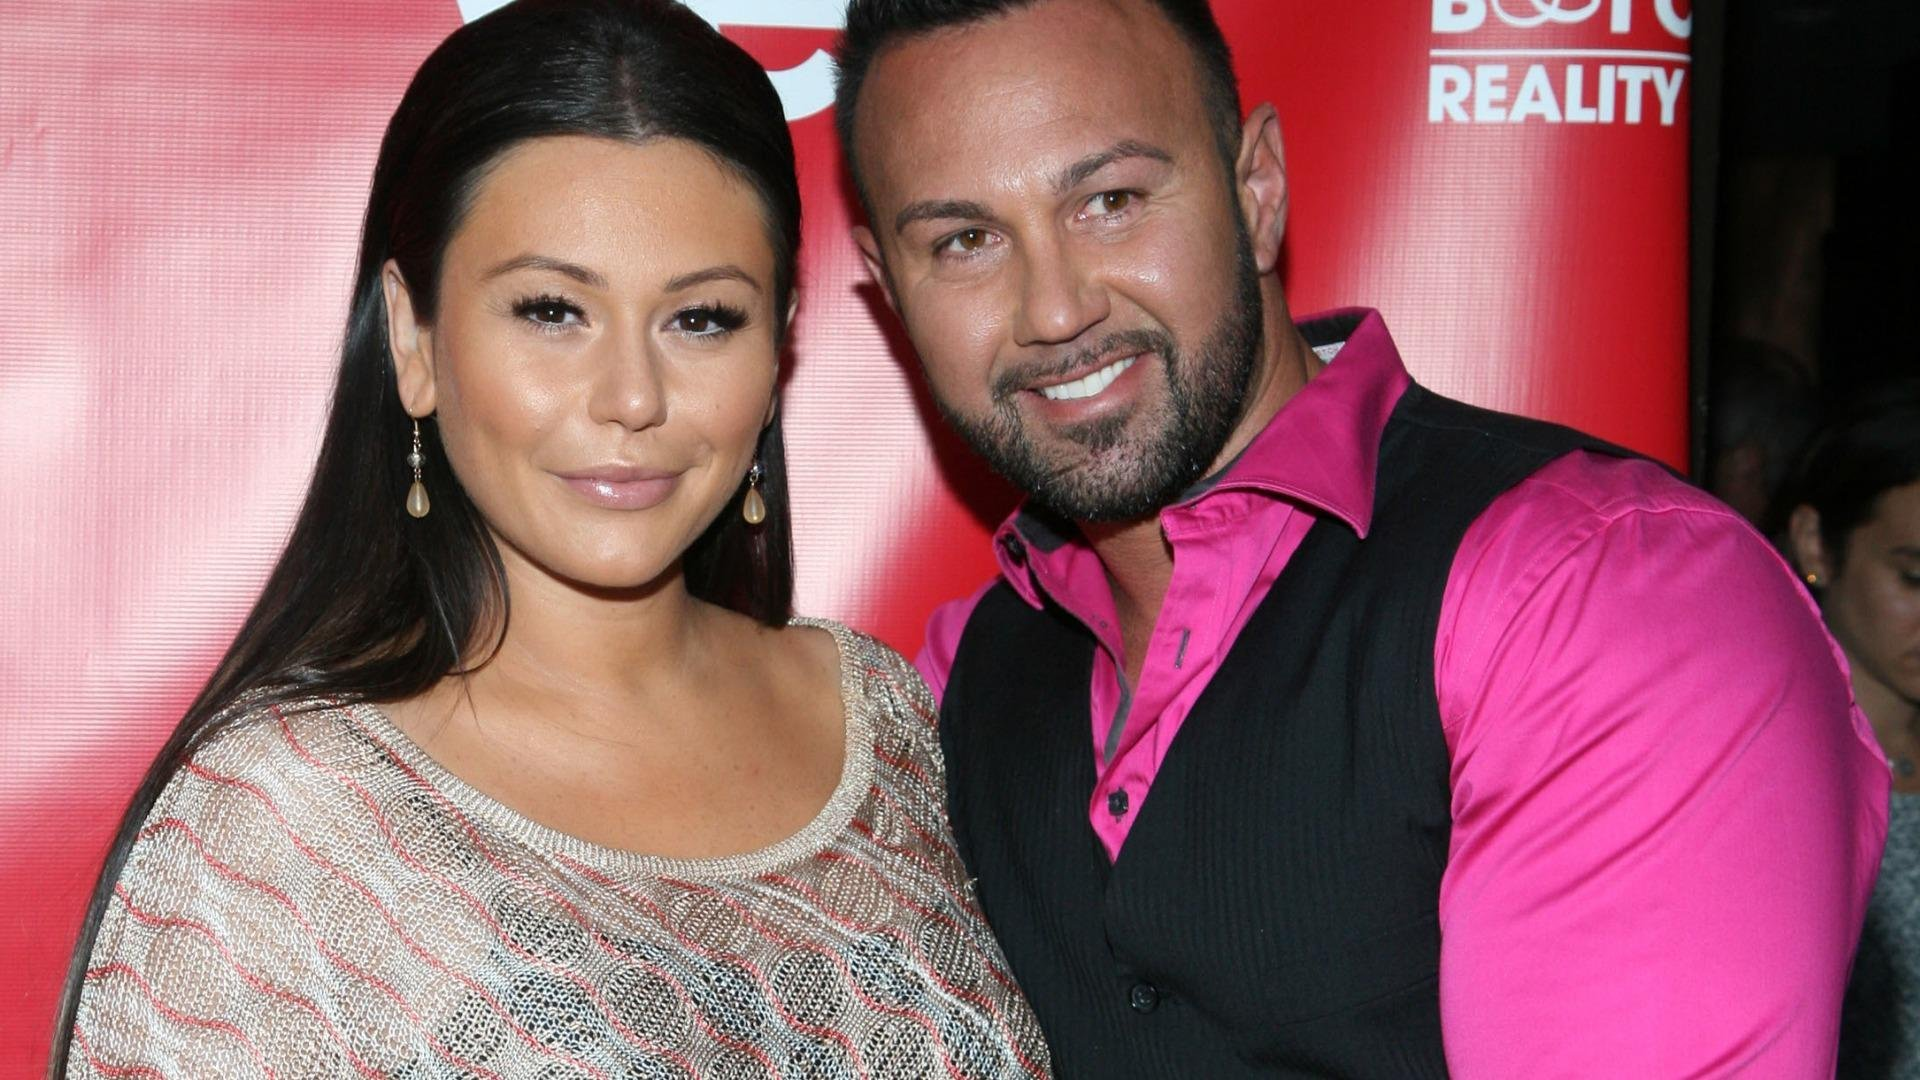 Jersey Shore Jwoww And Roger Jwoww and roger welcome a baby Jwoww Baby Girl Pictures